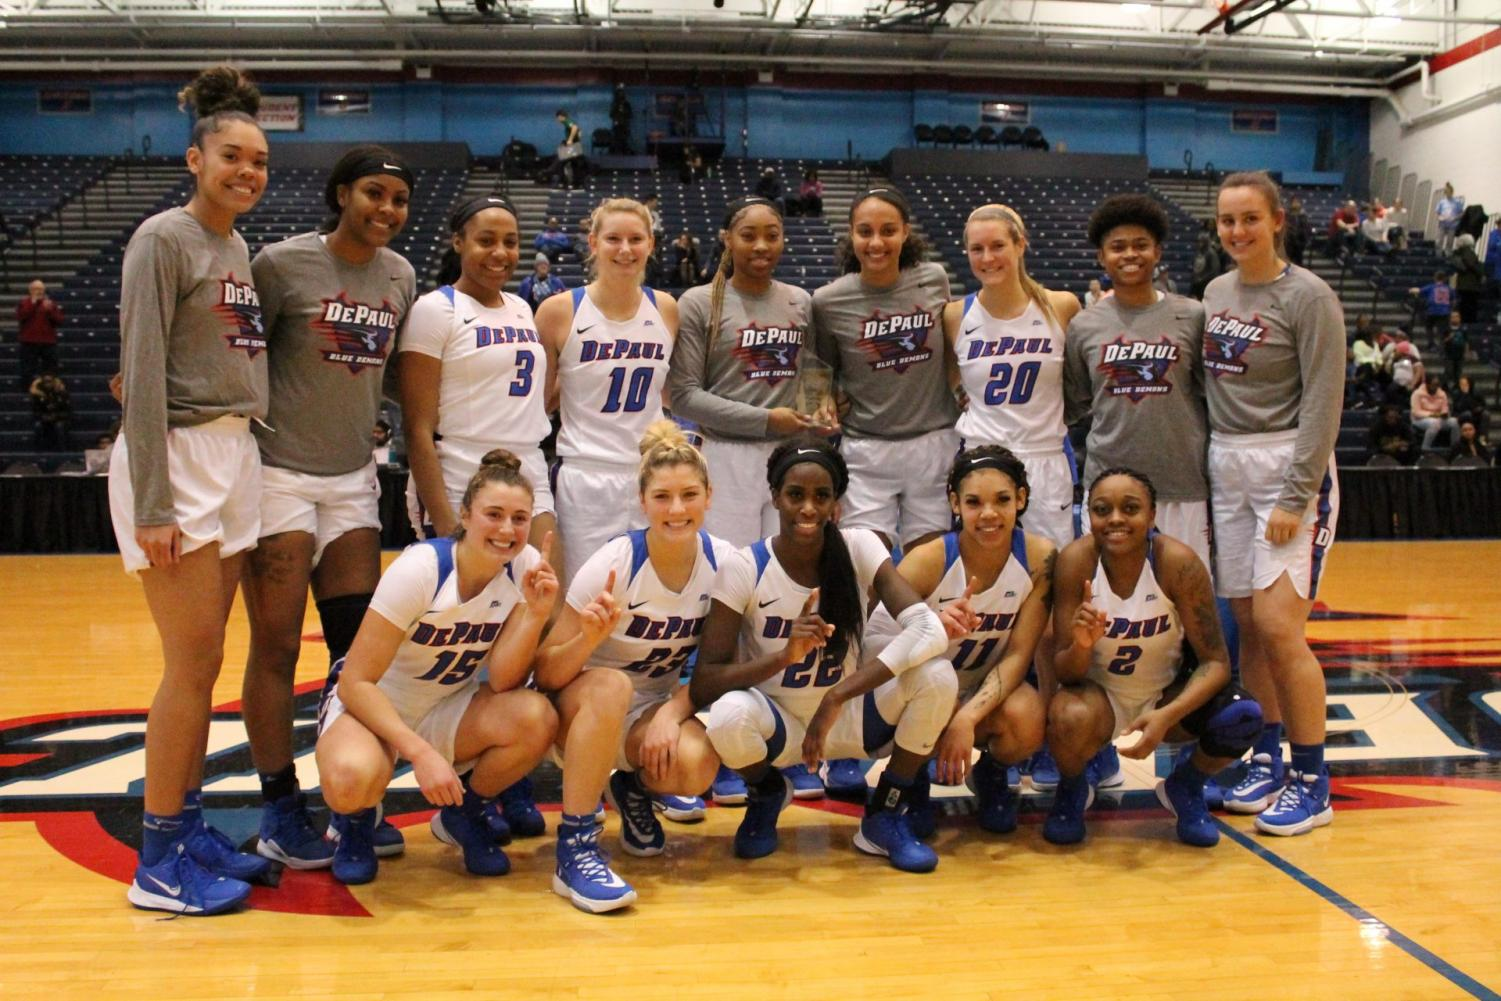 The women's basketball team celebrates after winning the Maggie Dixon Classic on Saturday.